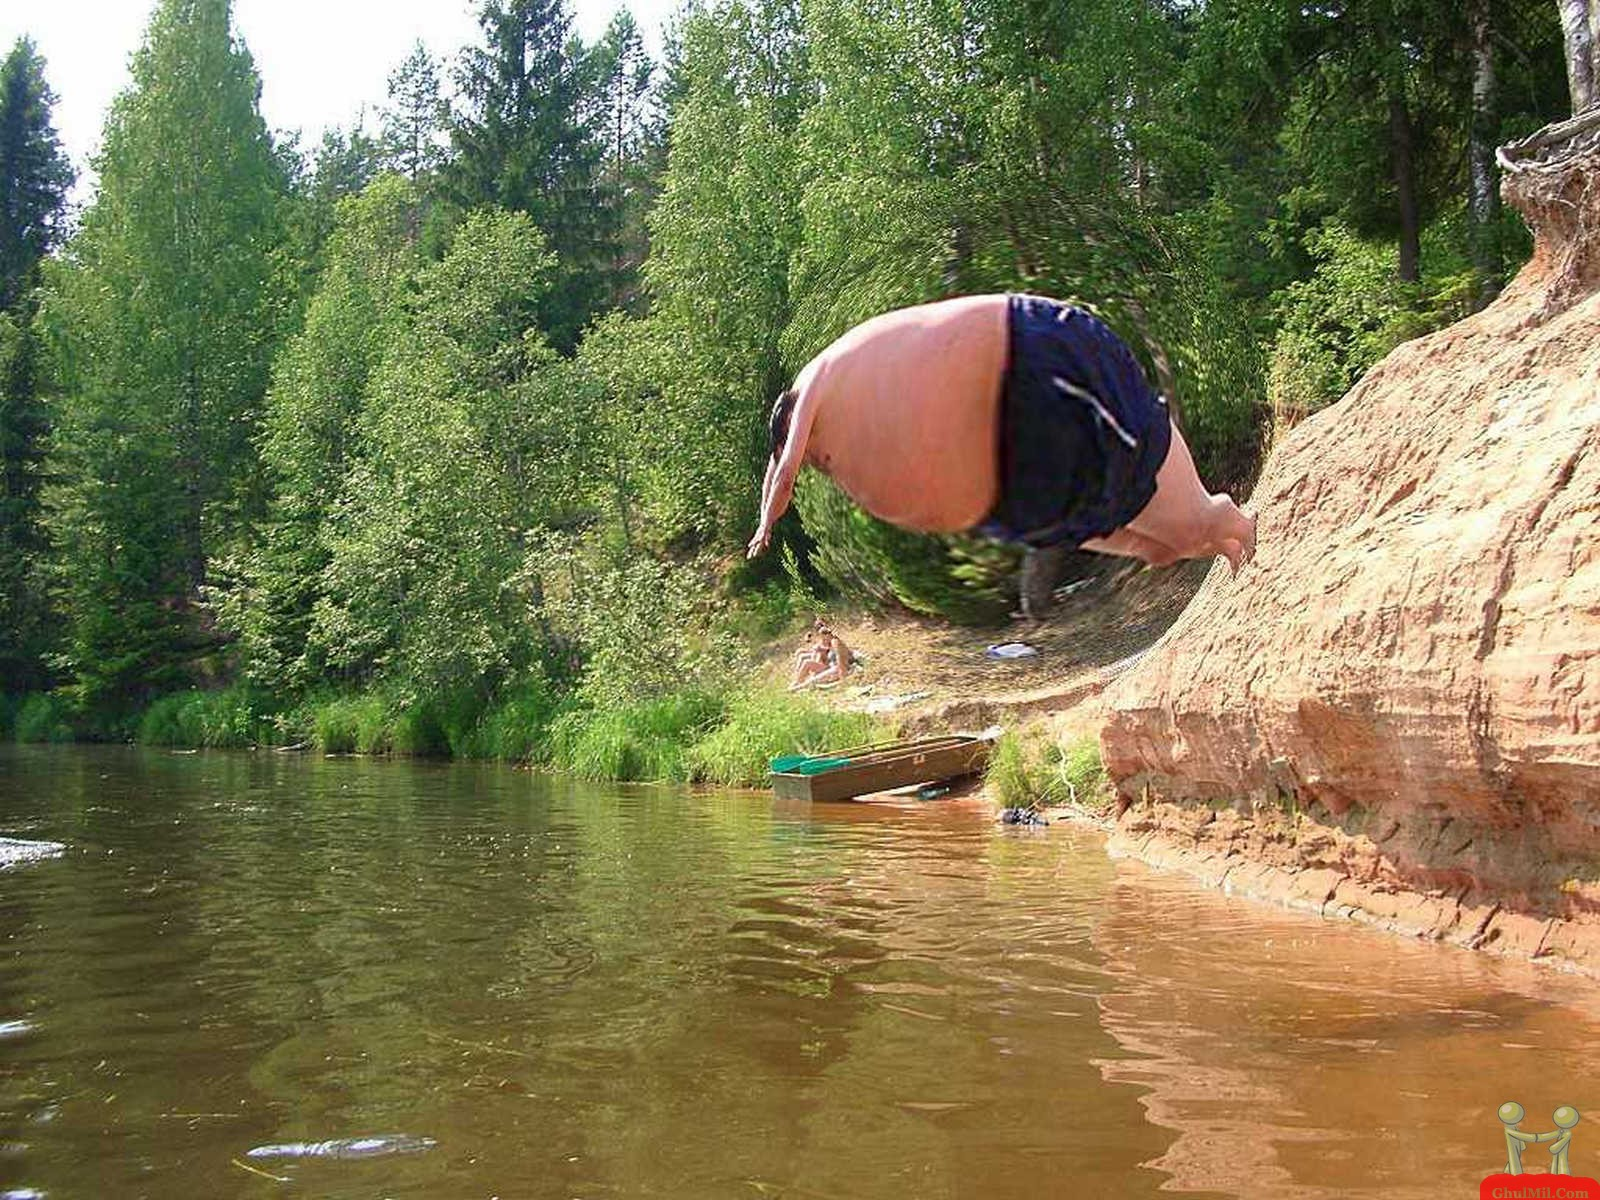 Amazing Fat Man Jumping In Pond Funny Image